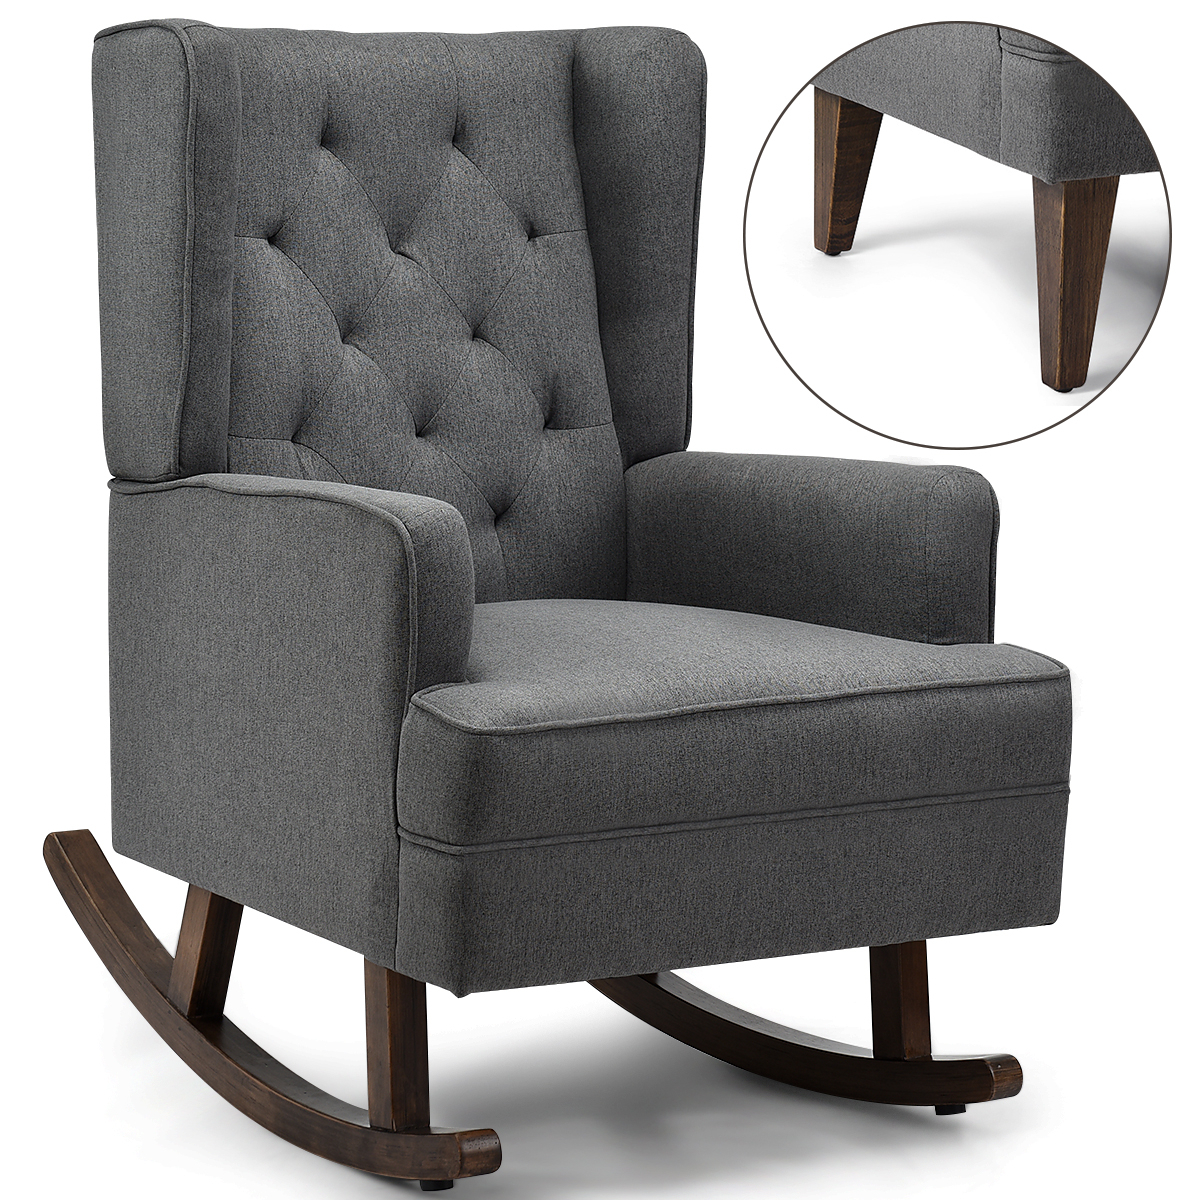 Costway: Costway 2 In 1 Tufted Rocking Chair Wingback Lounge Leisure  Armchair Fabric Rocker Grey | Rakuten Regarding Rocking Chairs & Lounge Chairs In Grey (View 2 of 20)